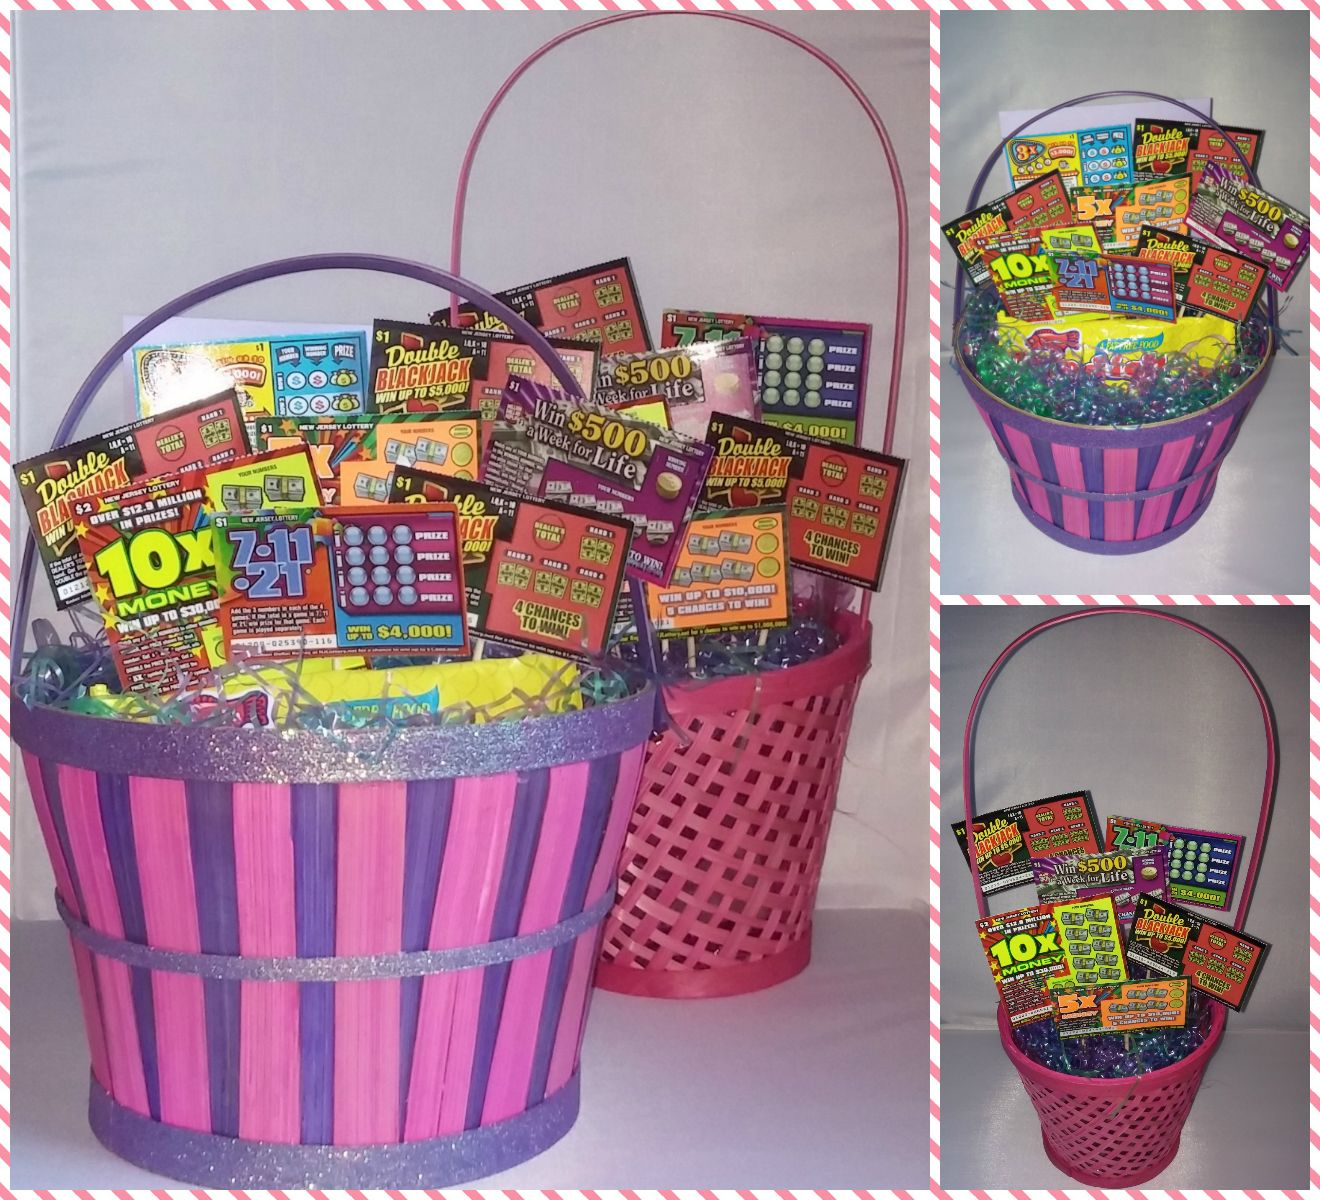 Congratulate, Grandma pussy easter basket are